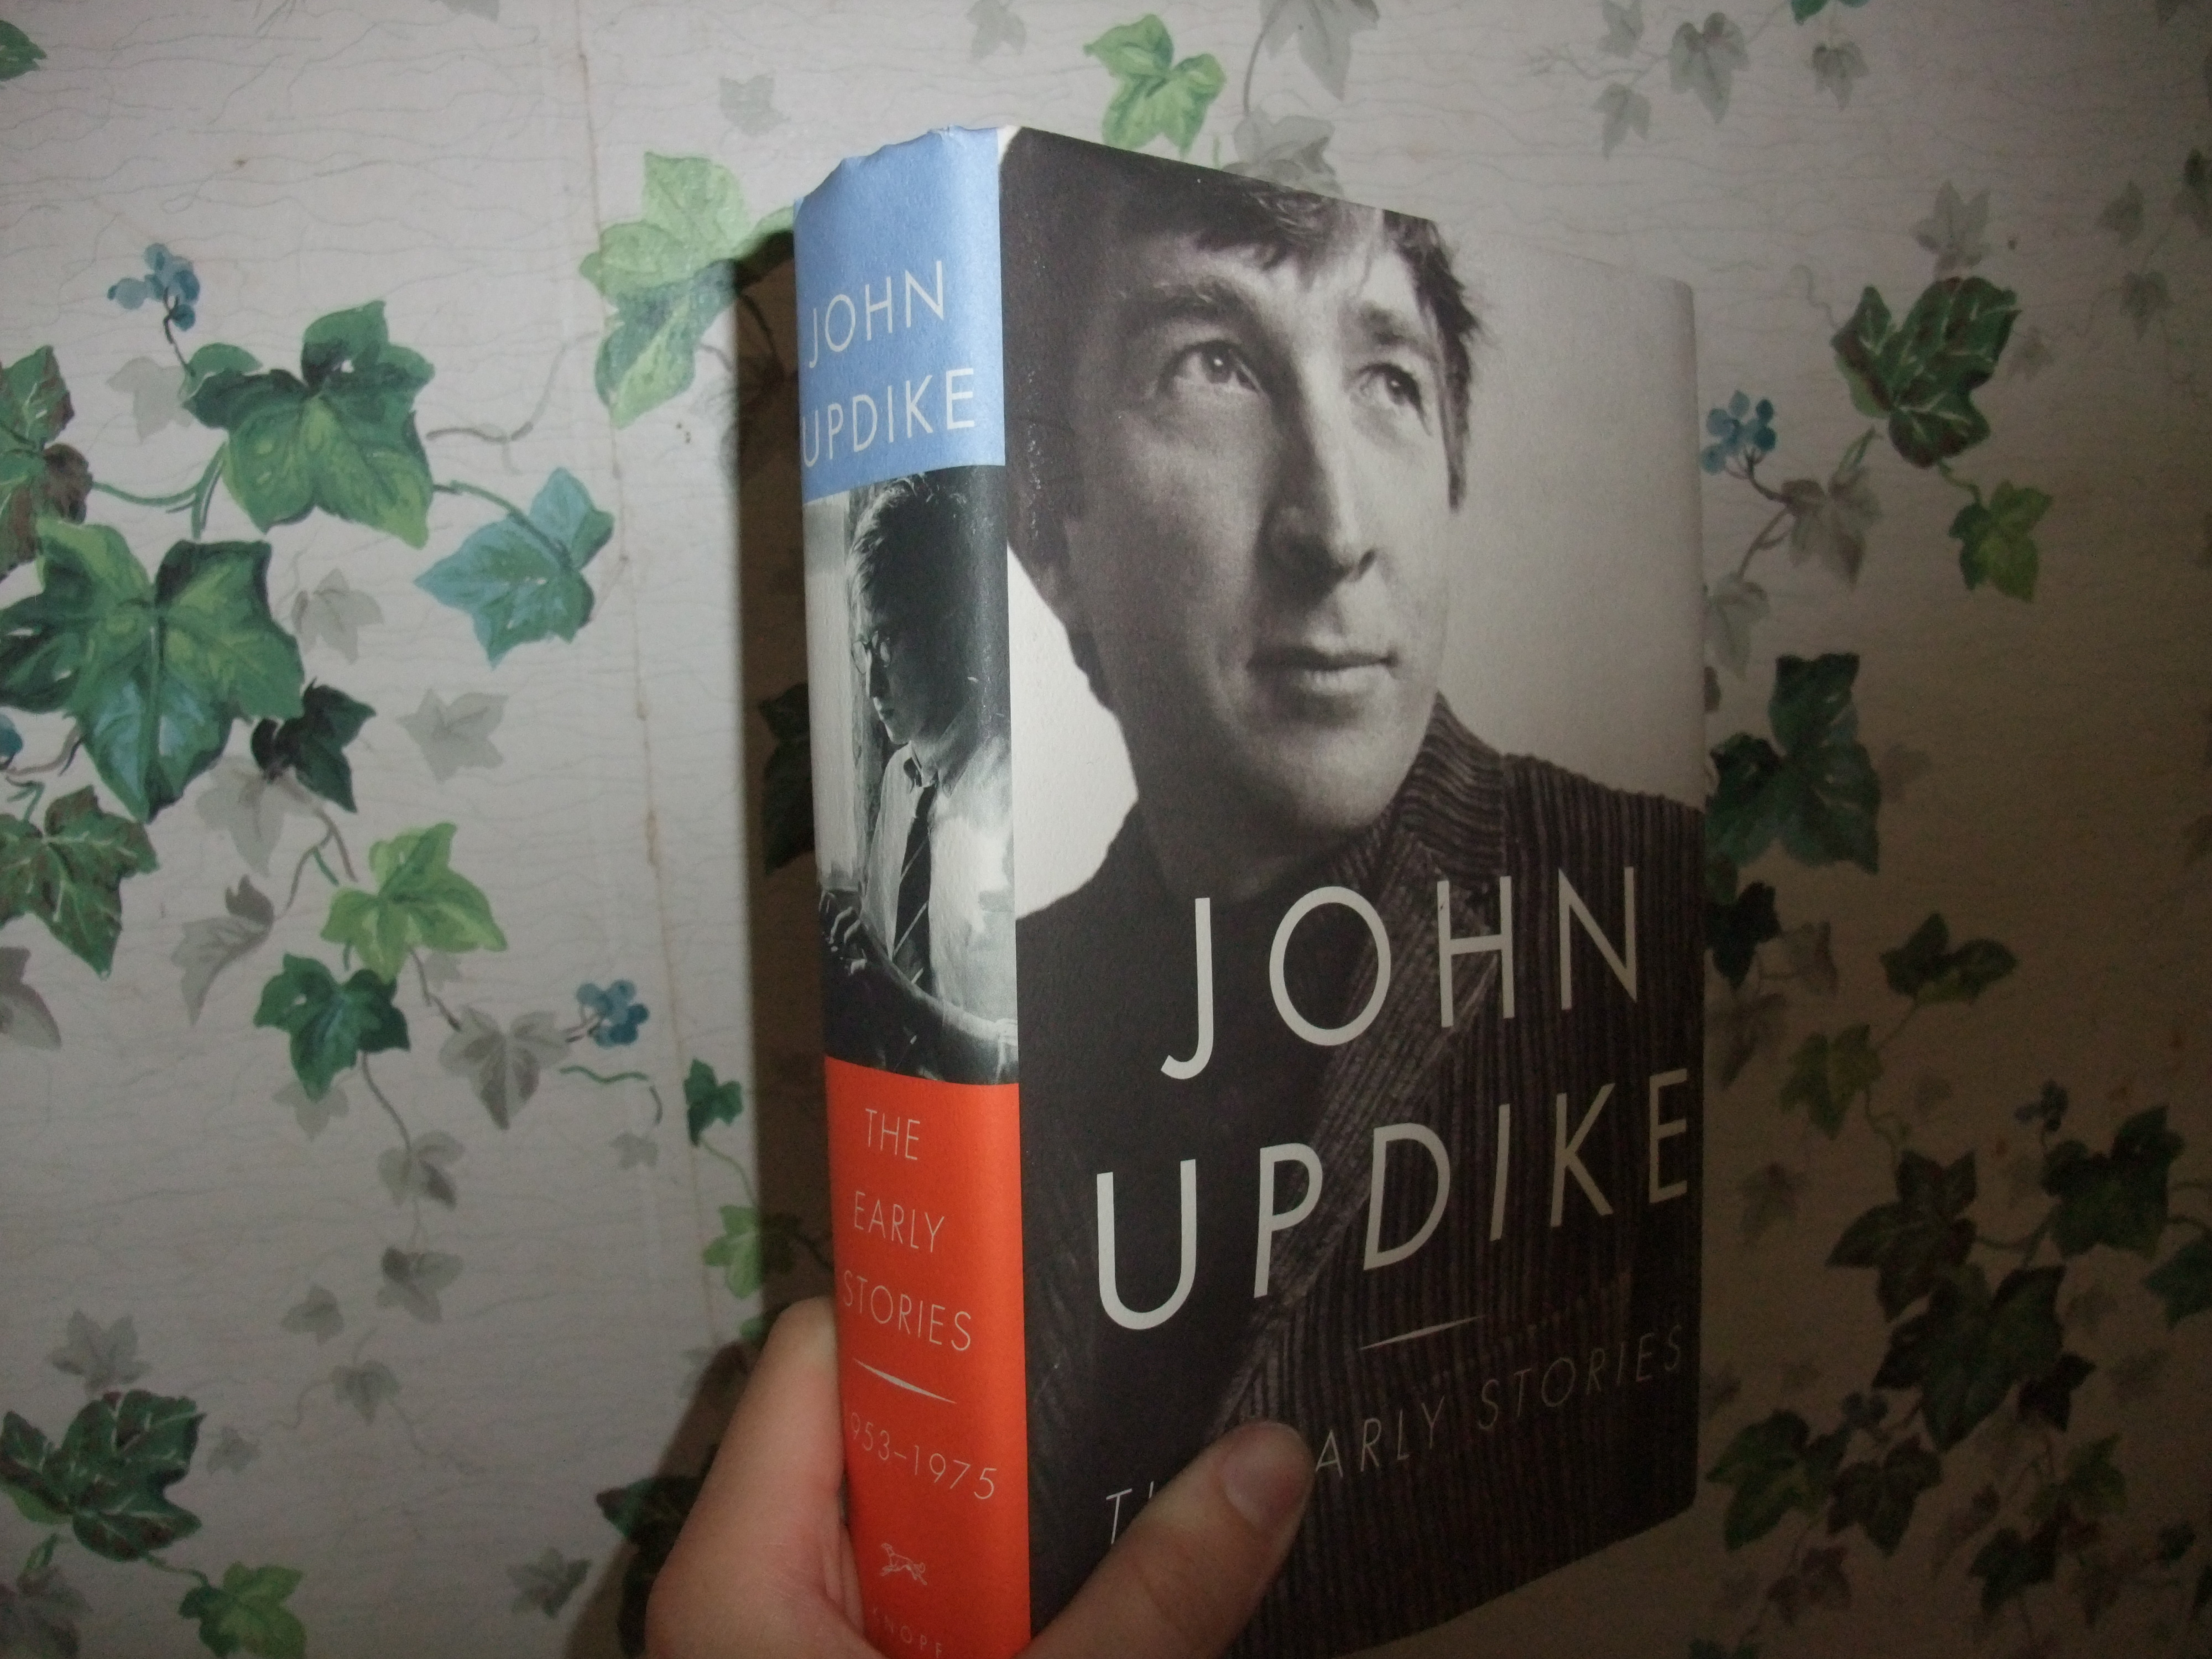 an introduction to the life of john hoyer updike John updike (1932-) links john hoyer updike homepage new york times on the web: john updike (58 and 27 minutes long), in which he deals with subjects ranging from writing, to literary criticism, to his home life john updike.